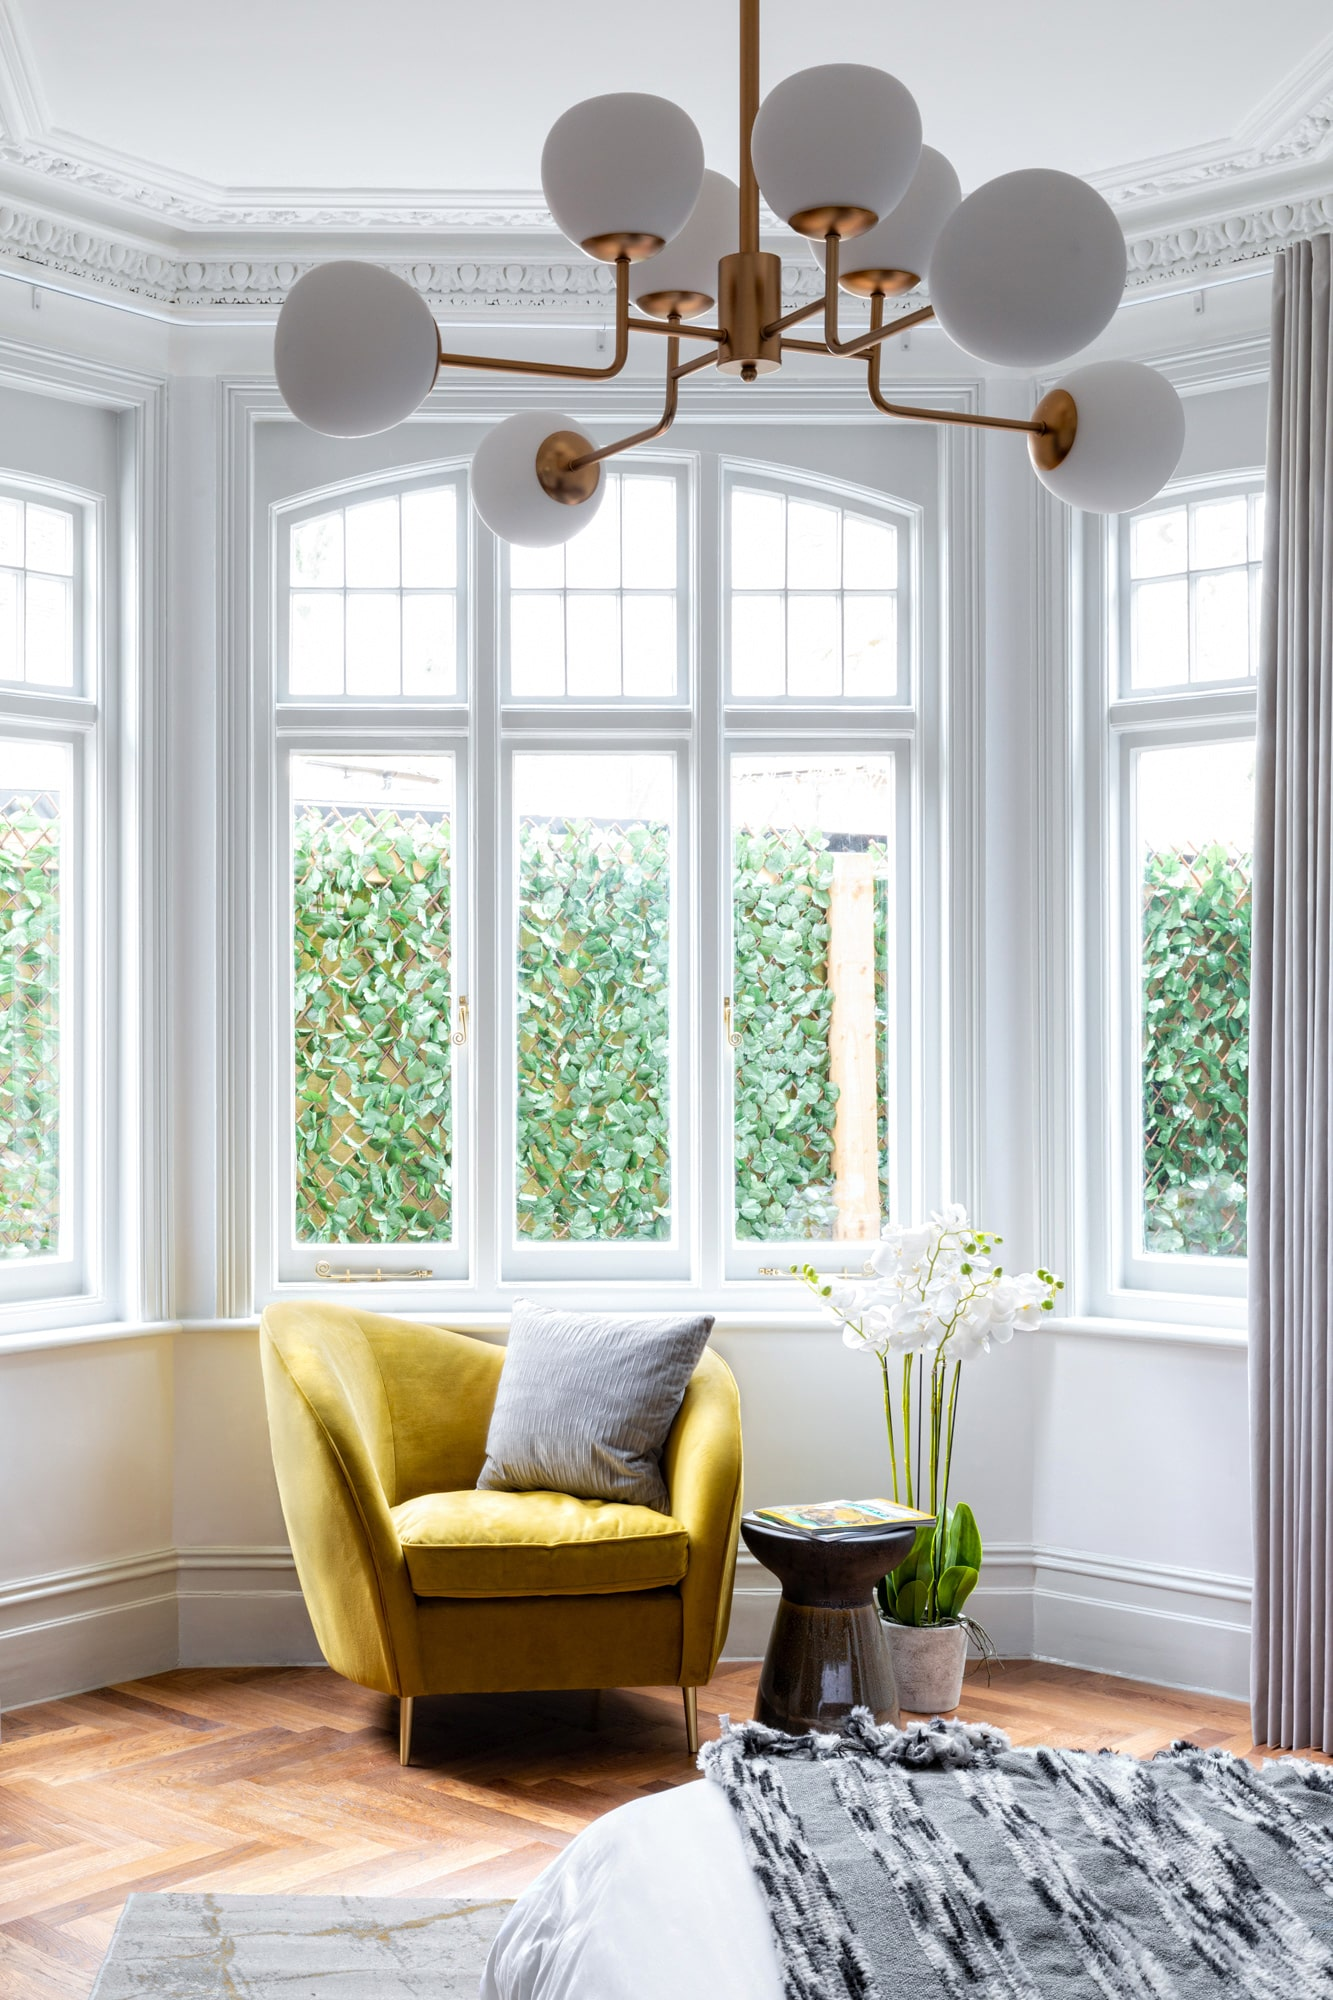 Interior close up photo of a bedroom: big victorian window, yellow armchair with a pillow and a beautiful ceiling lighting